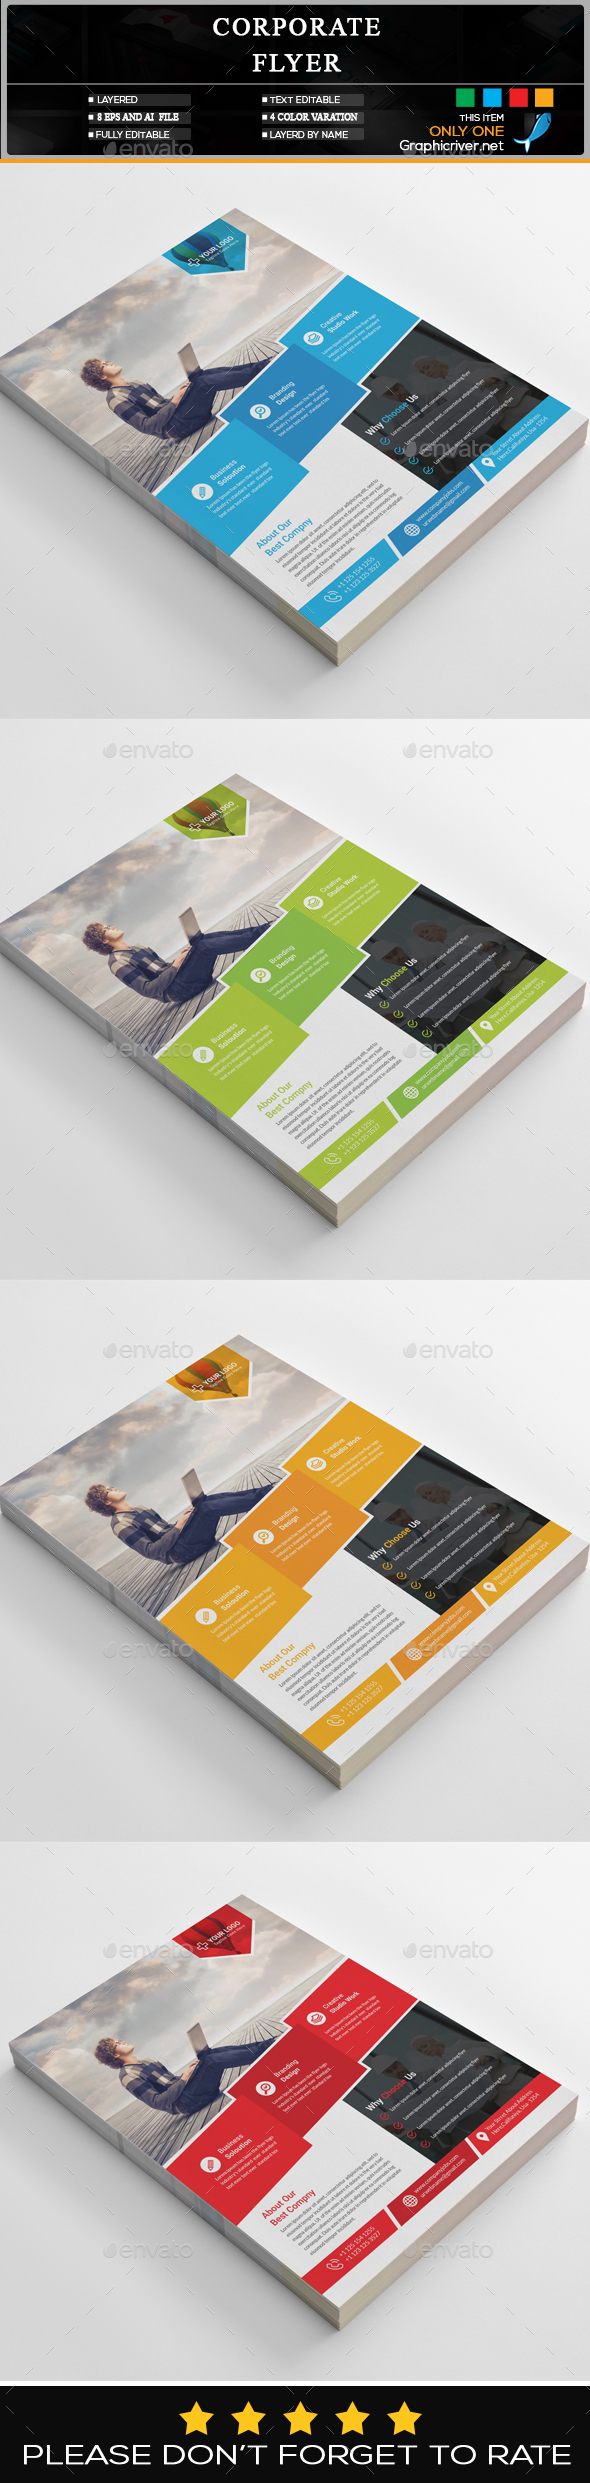 GraphicRiver Corporate Flyer 20306408